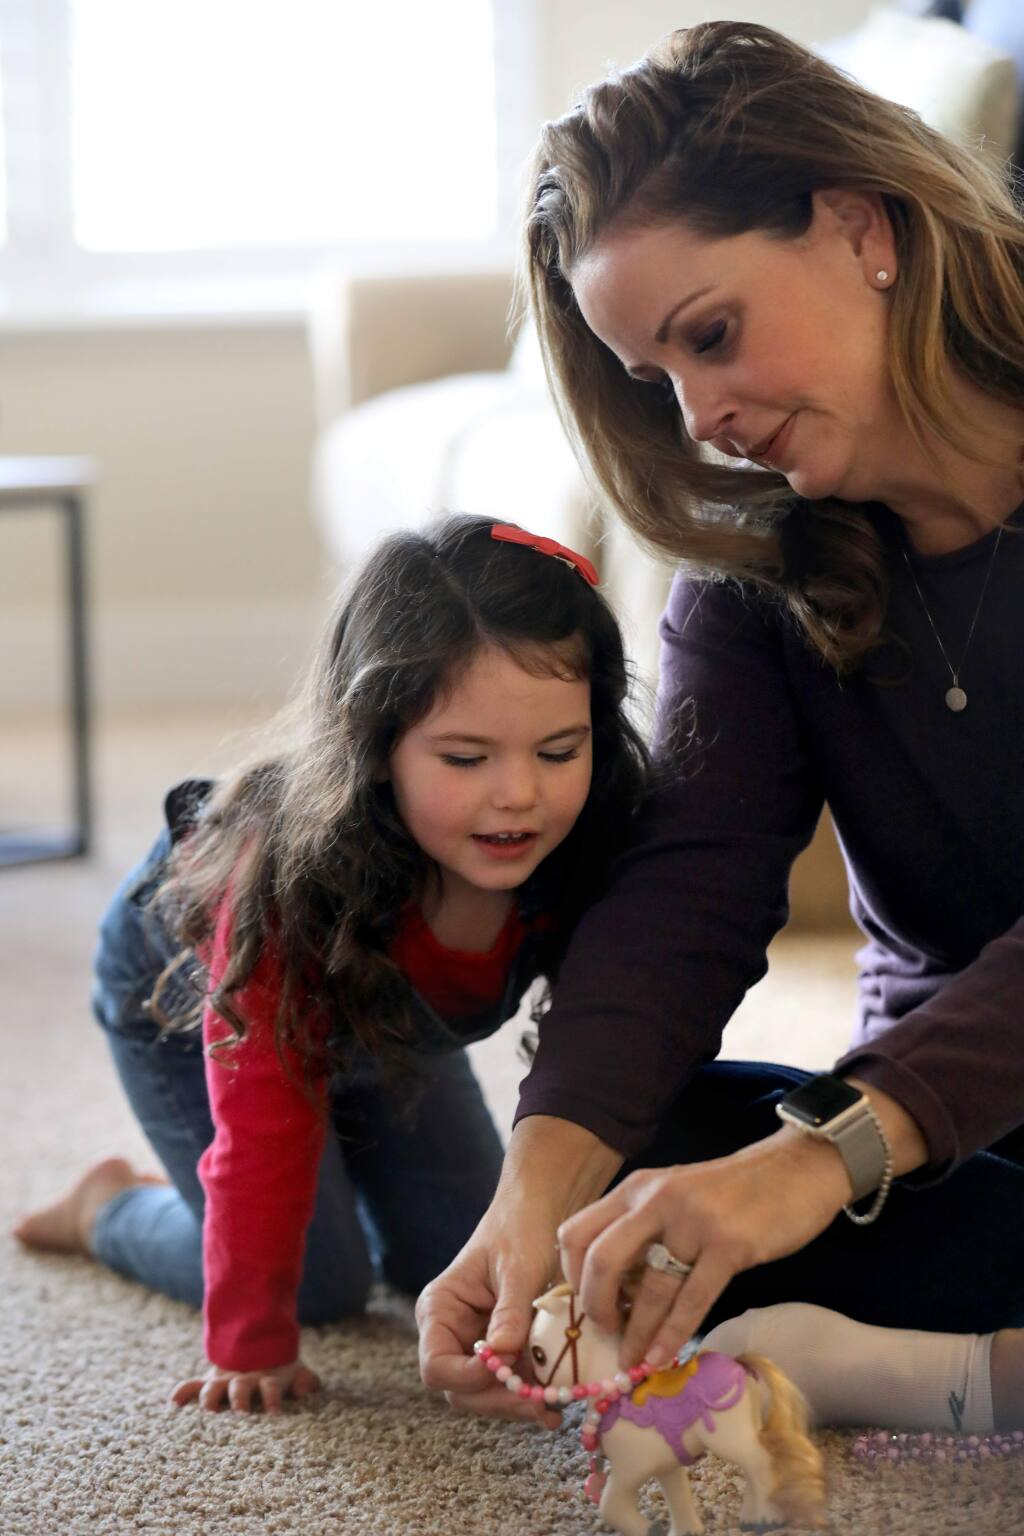 Keri Vellis plays with her adopted daughter Sara, 4, at their home in Santa Rosa on Sunday, Jan. 12, 2020. (BETH SCHLANKER/ The Press Democrat)